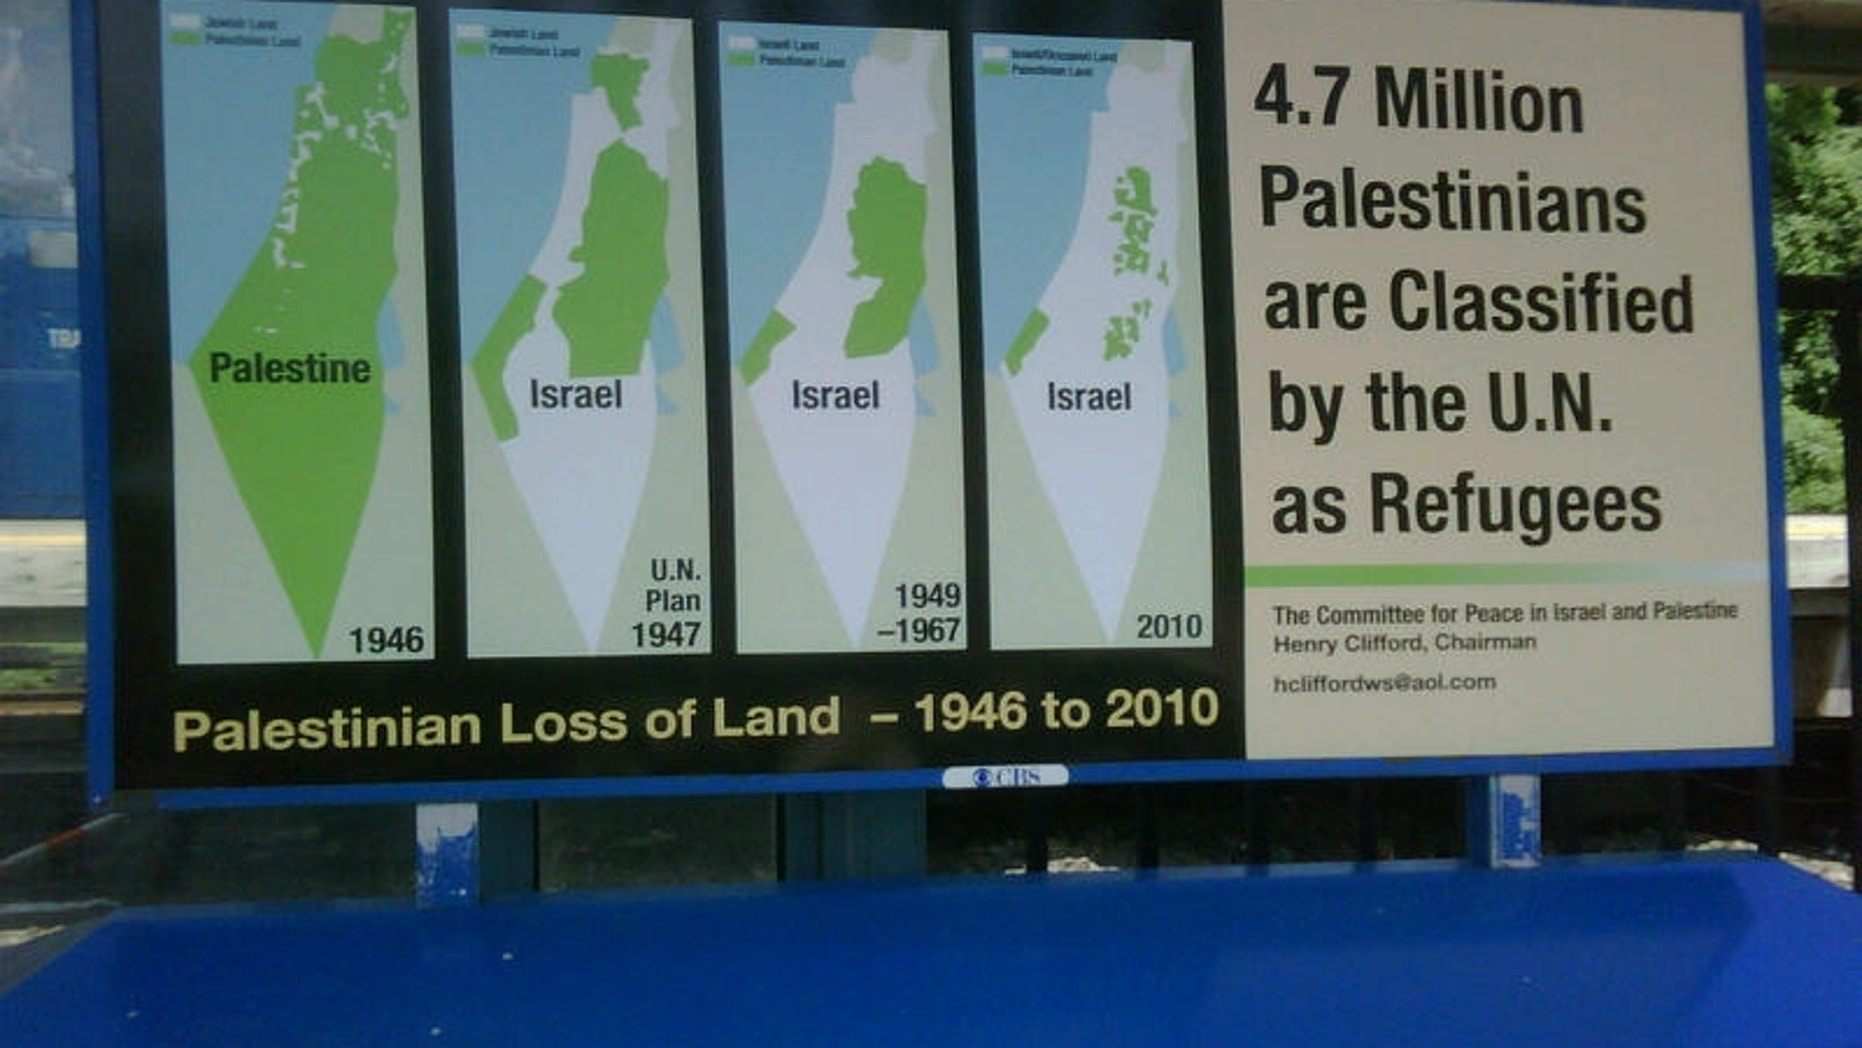 """Henry Clifford, co-chairman of The Committee for Peace in Israel and Palestine, told FoxNews.com he paid $25,000 to display posters at 50 Metro-North Railroad stations for 30 days. They are to """"educate and inform people"""" on the proper historical context of the region, he said."""